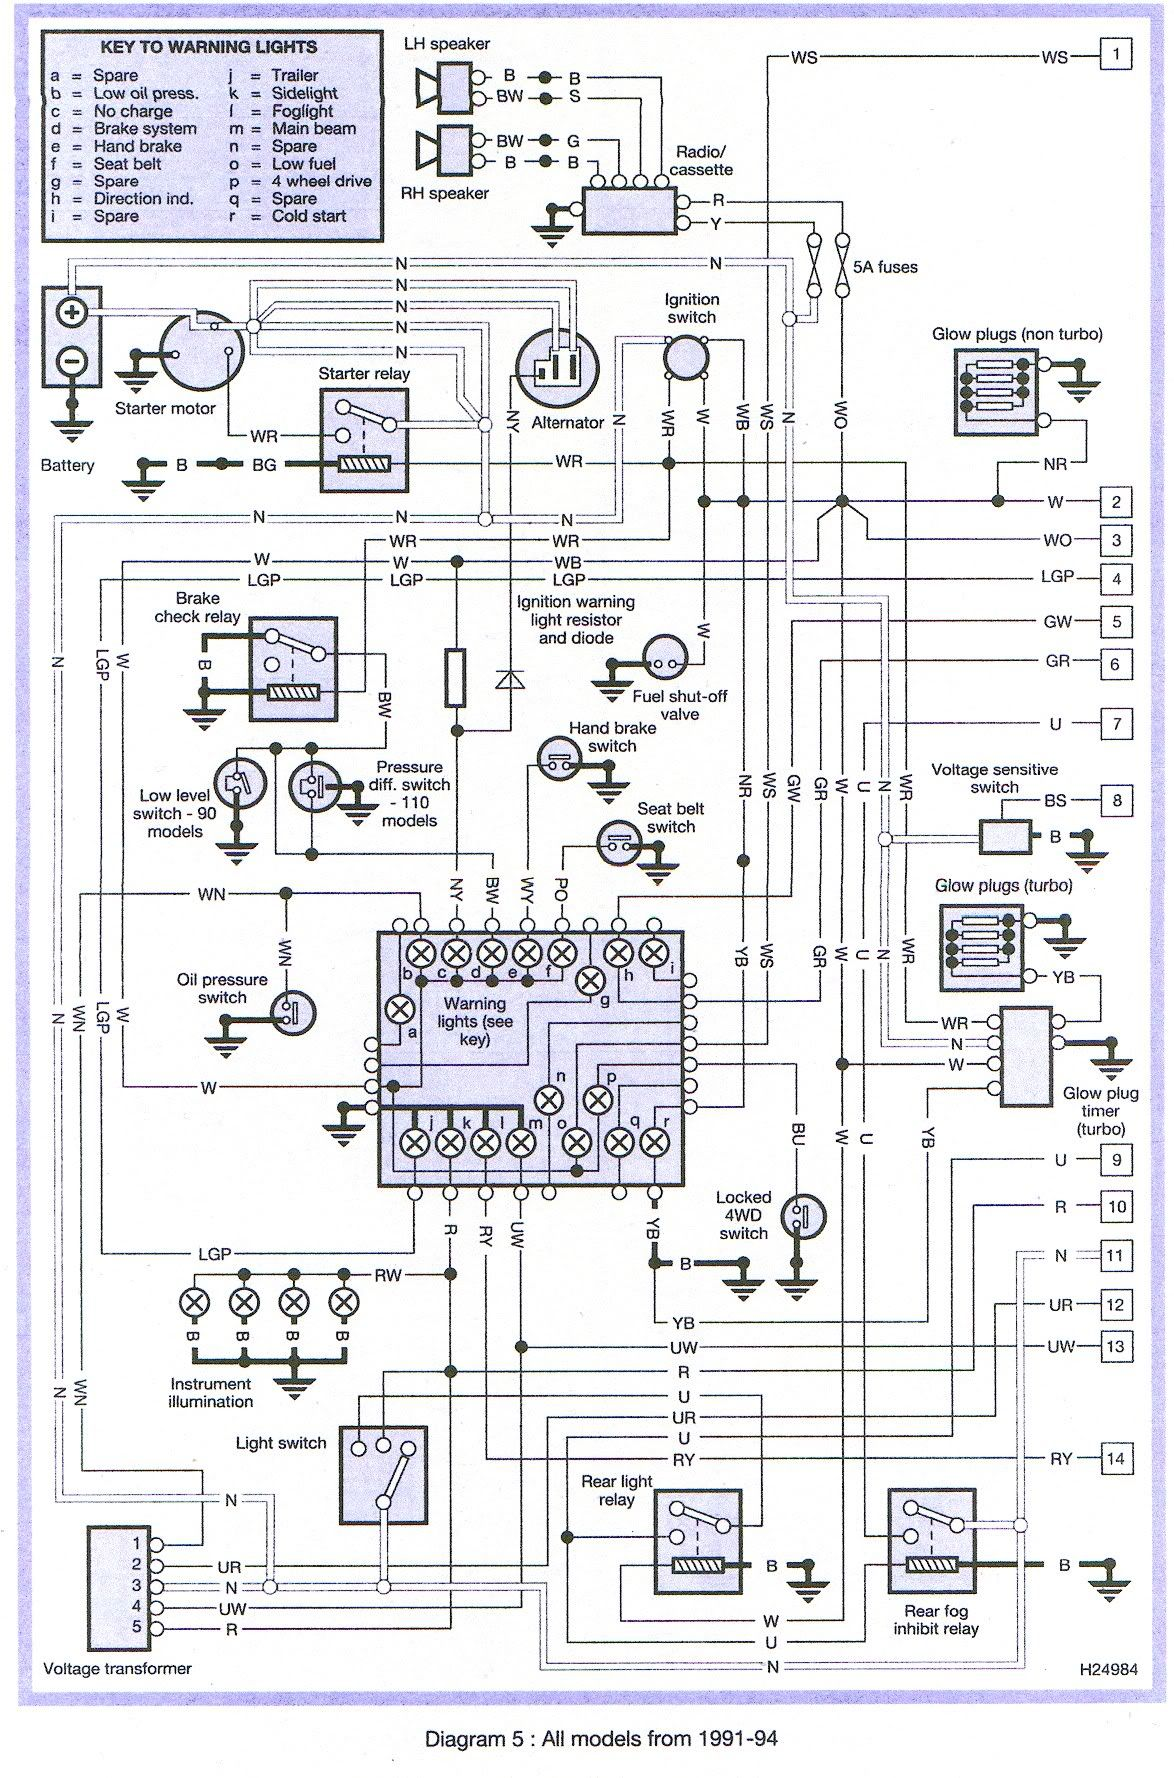 07629544bfff38ad2881b2c21312c6e6 land rover discovery wiring diagram manual repair with engine 1997 land rover discovery fuse box diagram at crackthecode.co